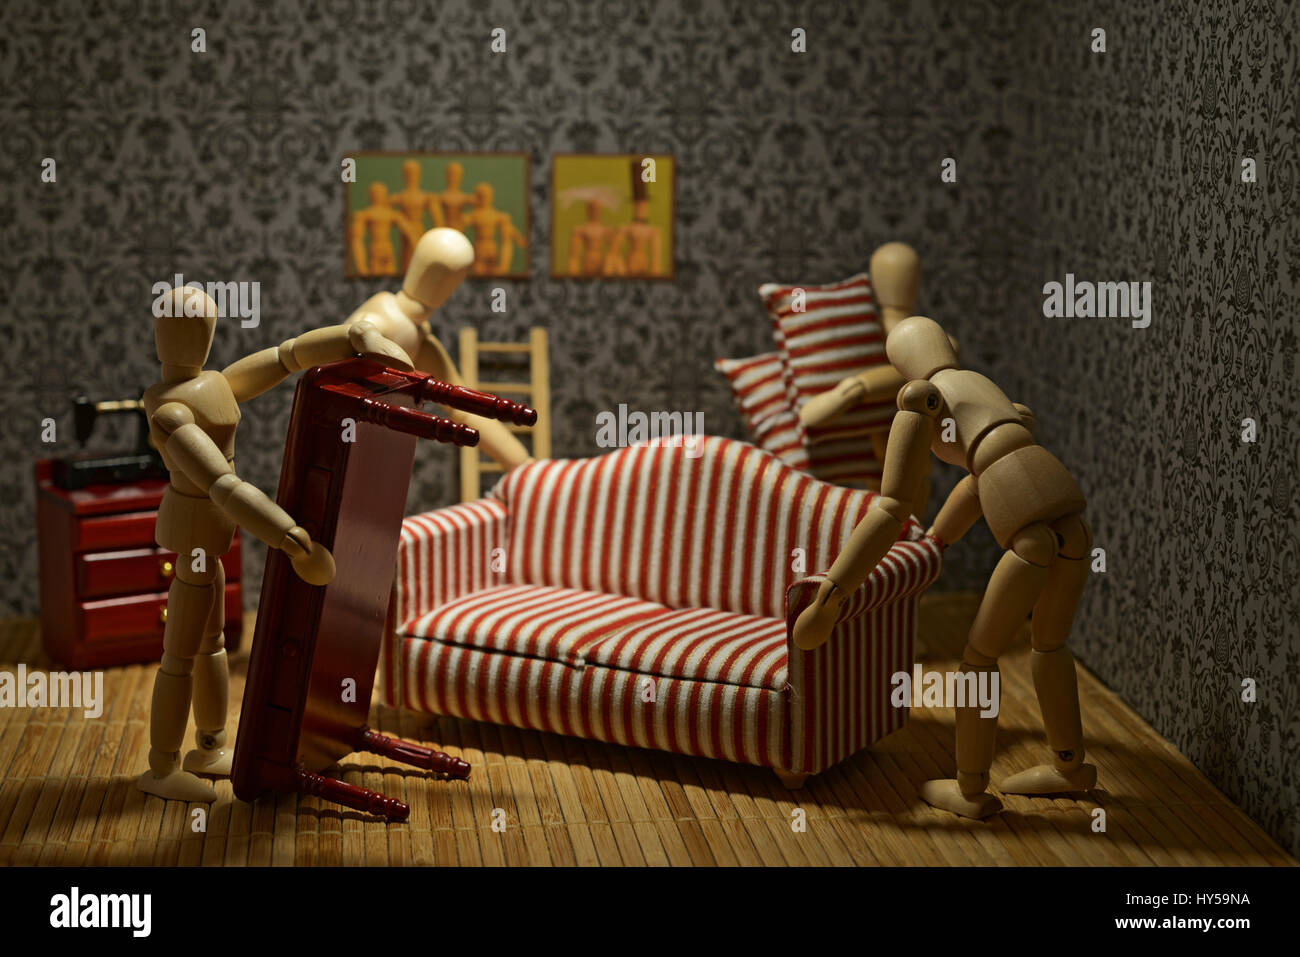 The life of the wooden figures - New furniture for the living room. - Stock Image